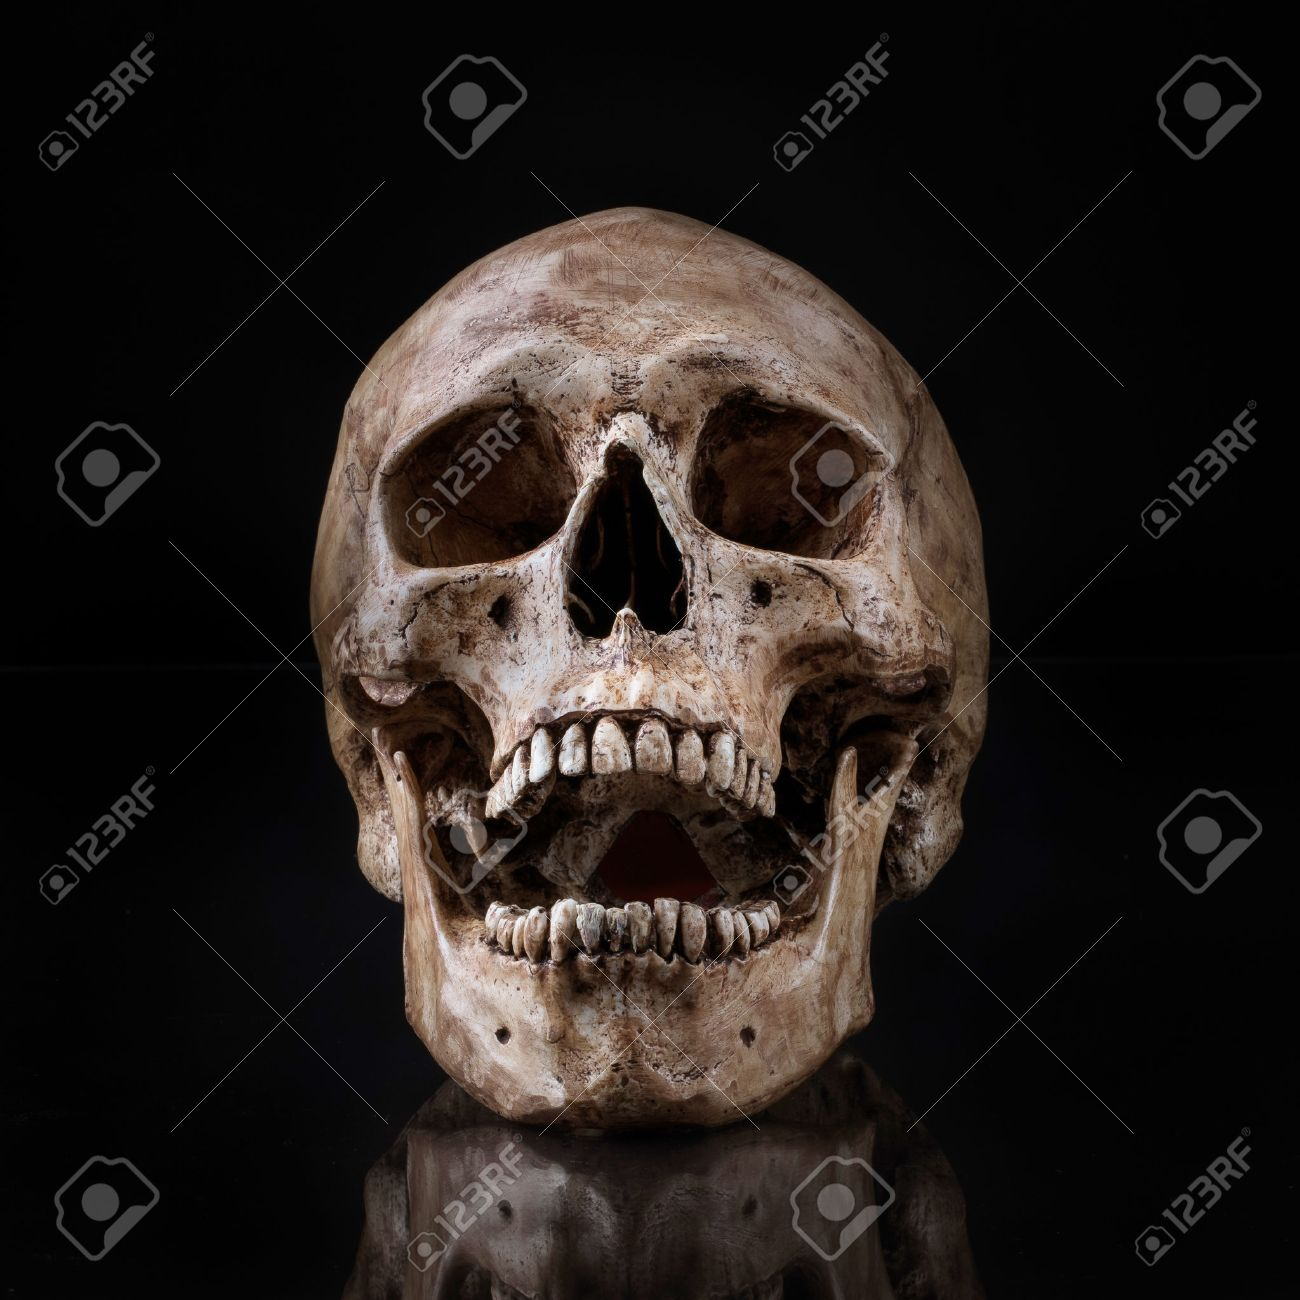 Human Skull Stock Photos Royalty Free Human Skull Images